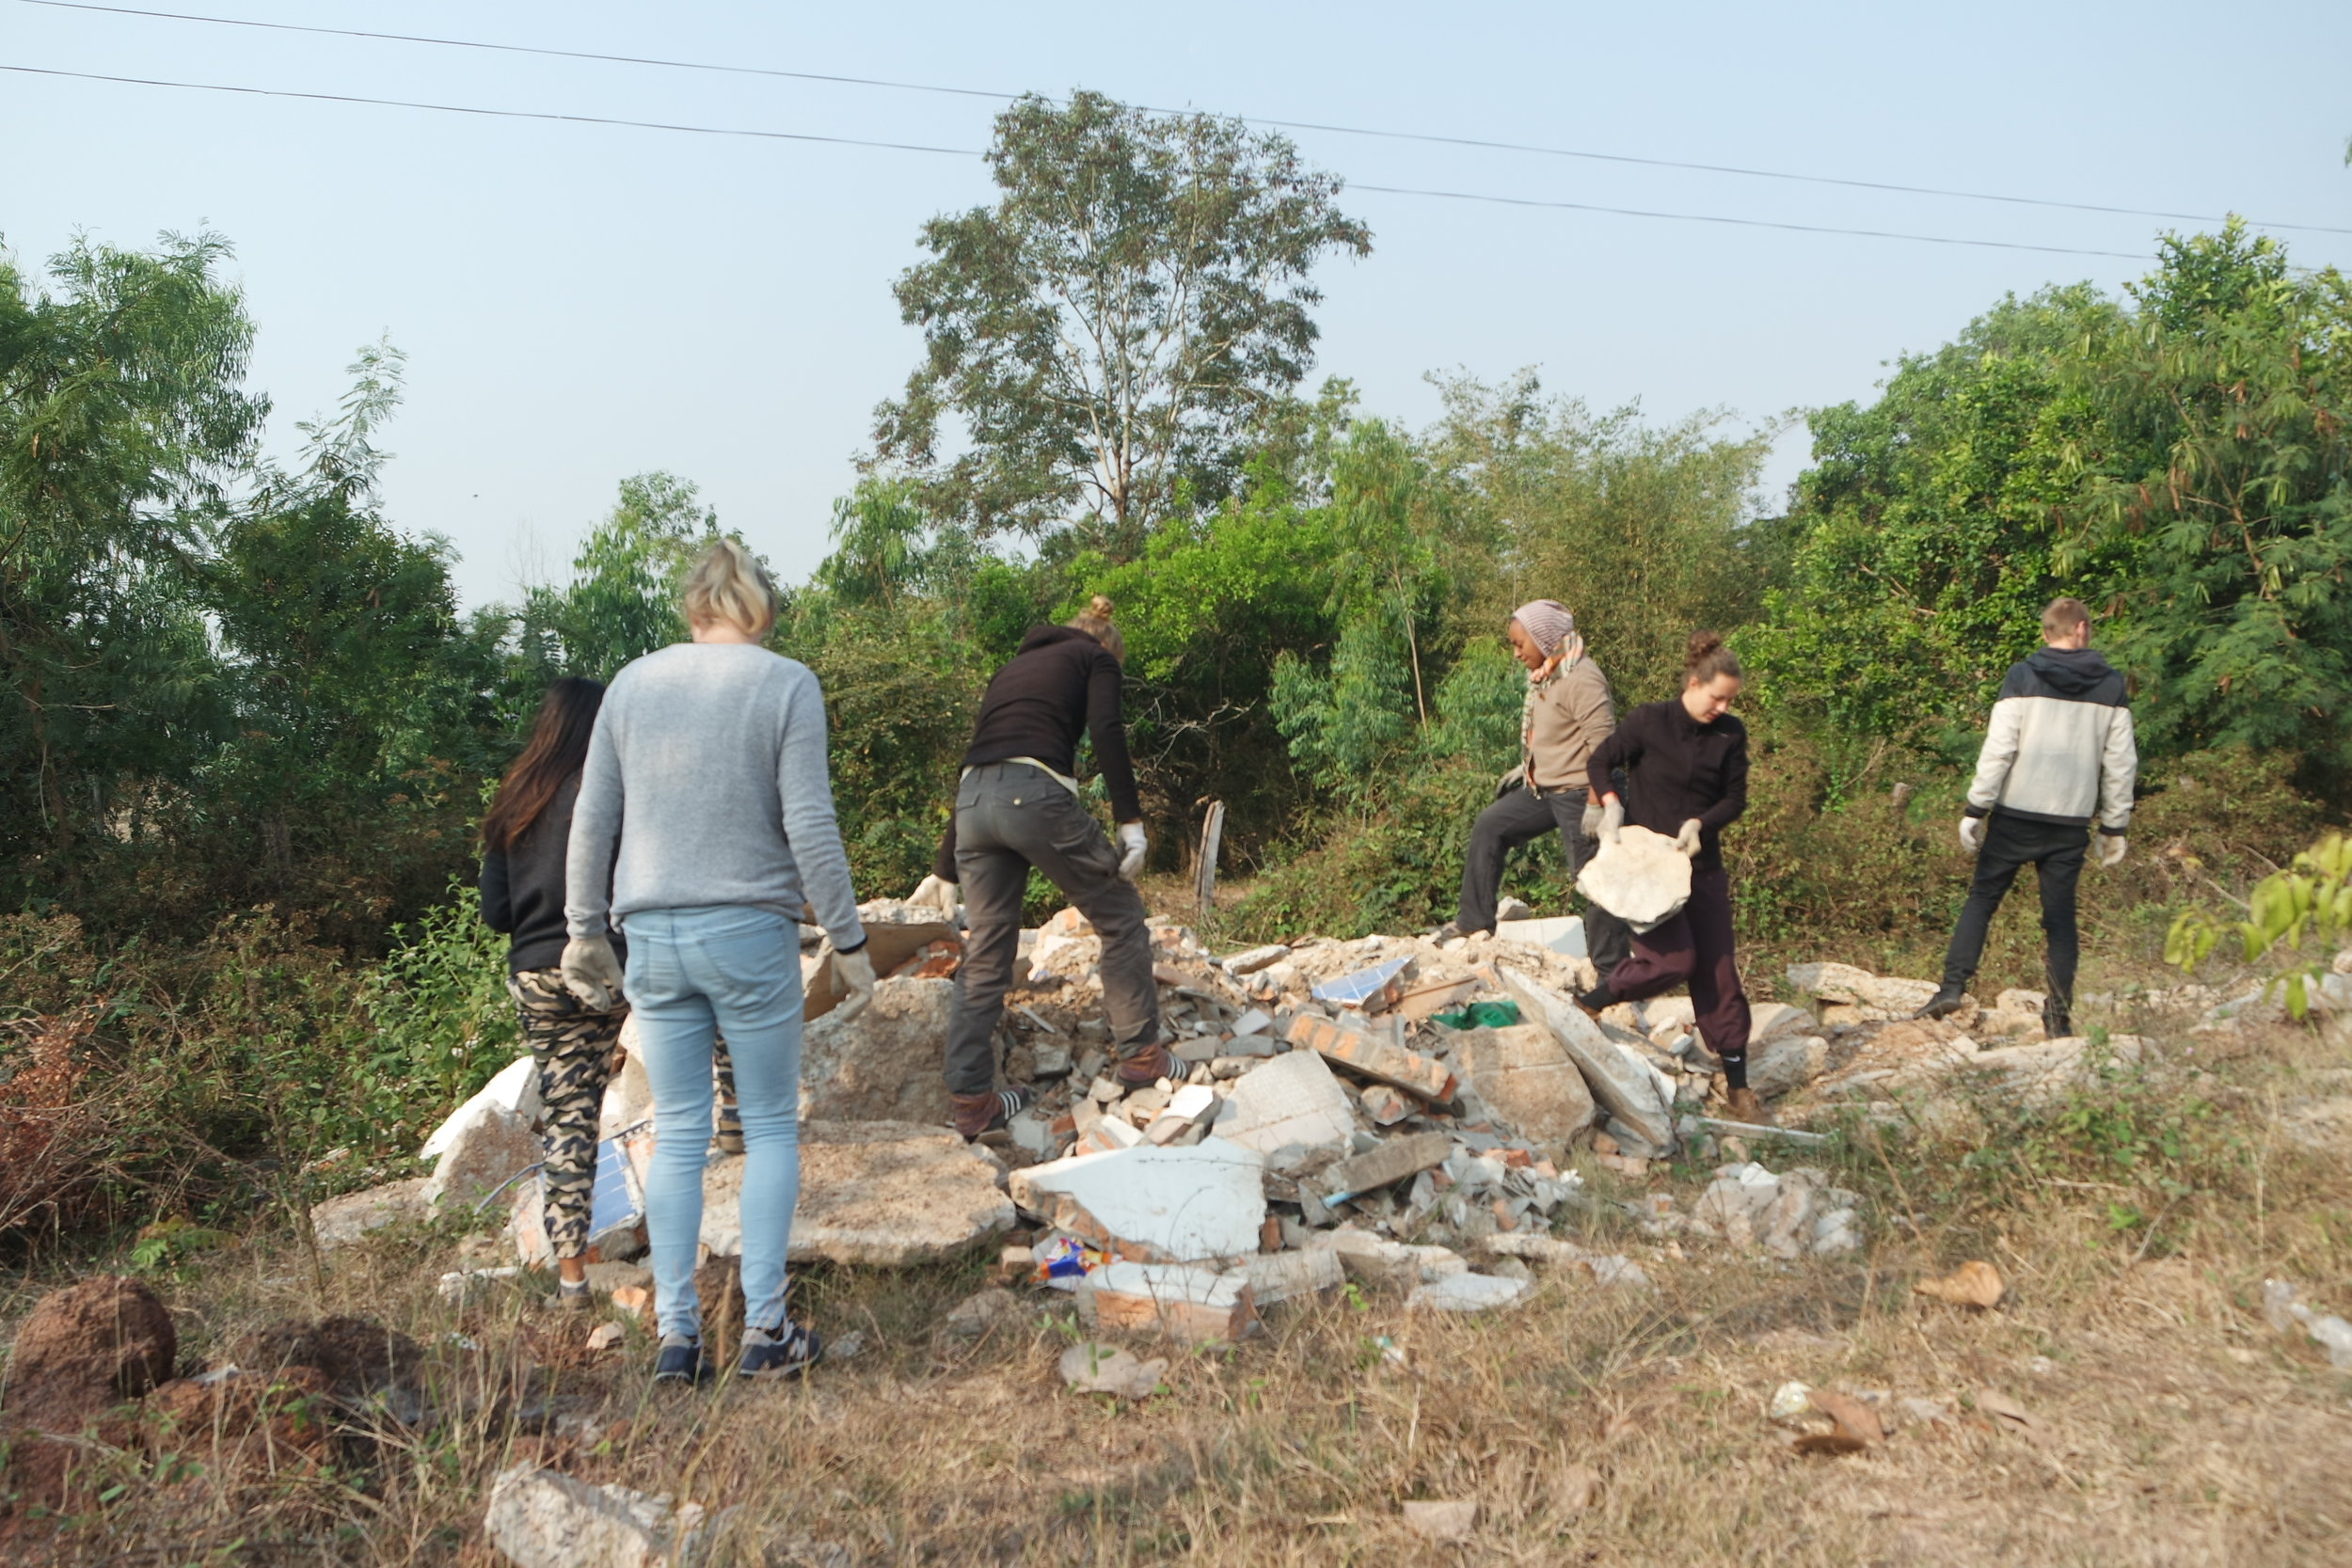 With the power of community we were cleaning roadside dump and gained building material.